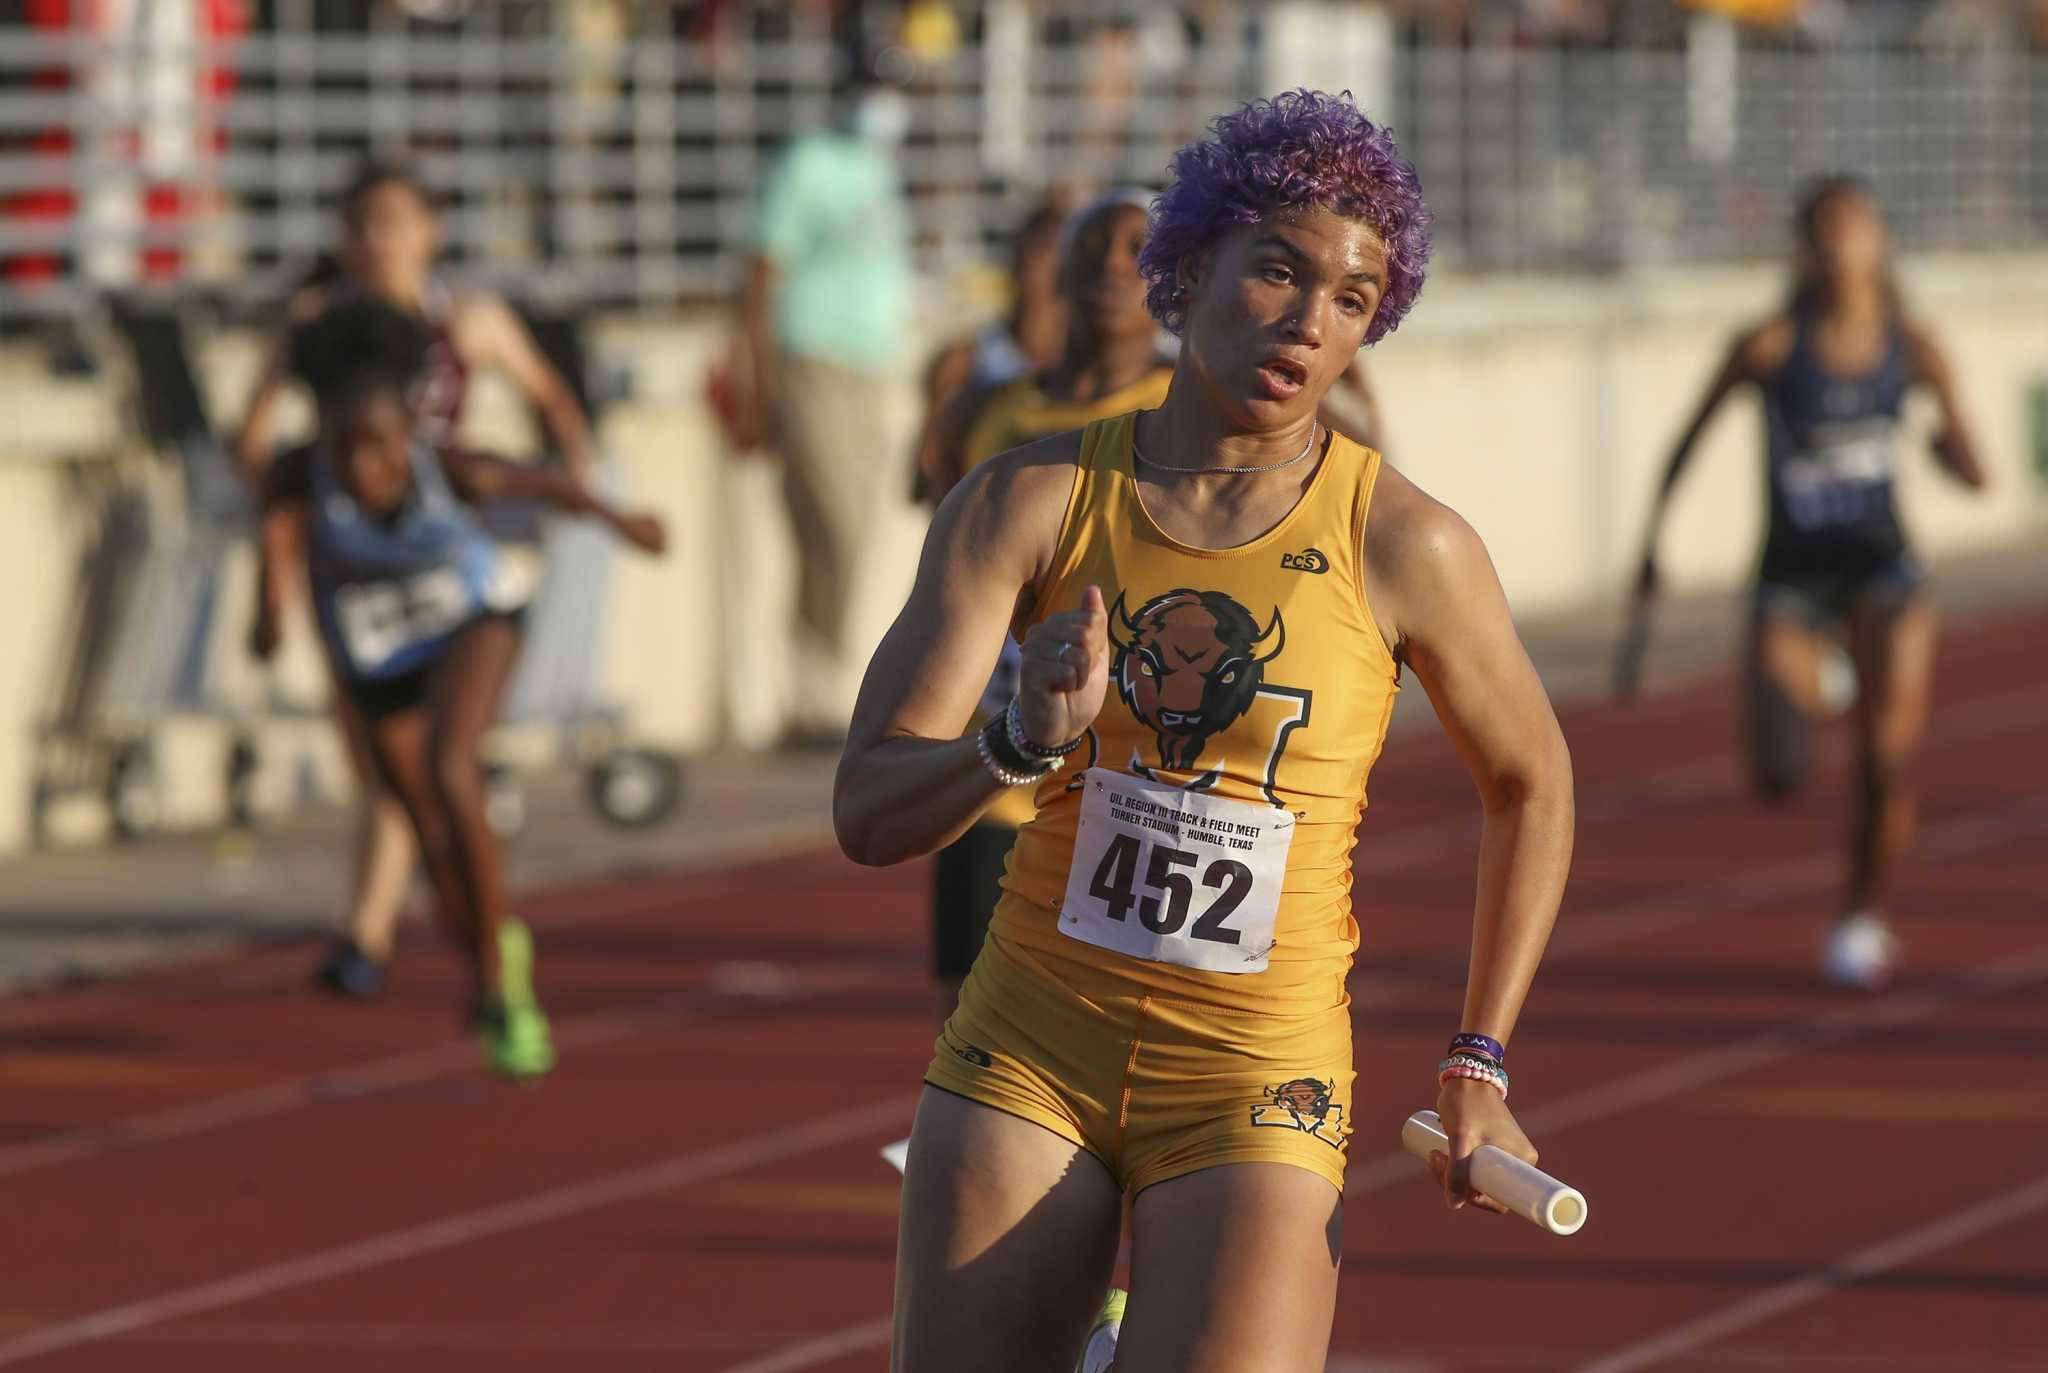 Fort Bend area track athletes among top seeds for state meet